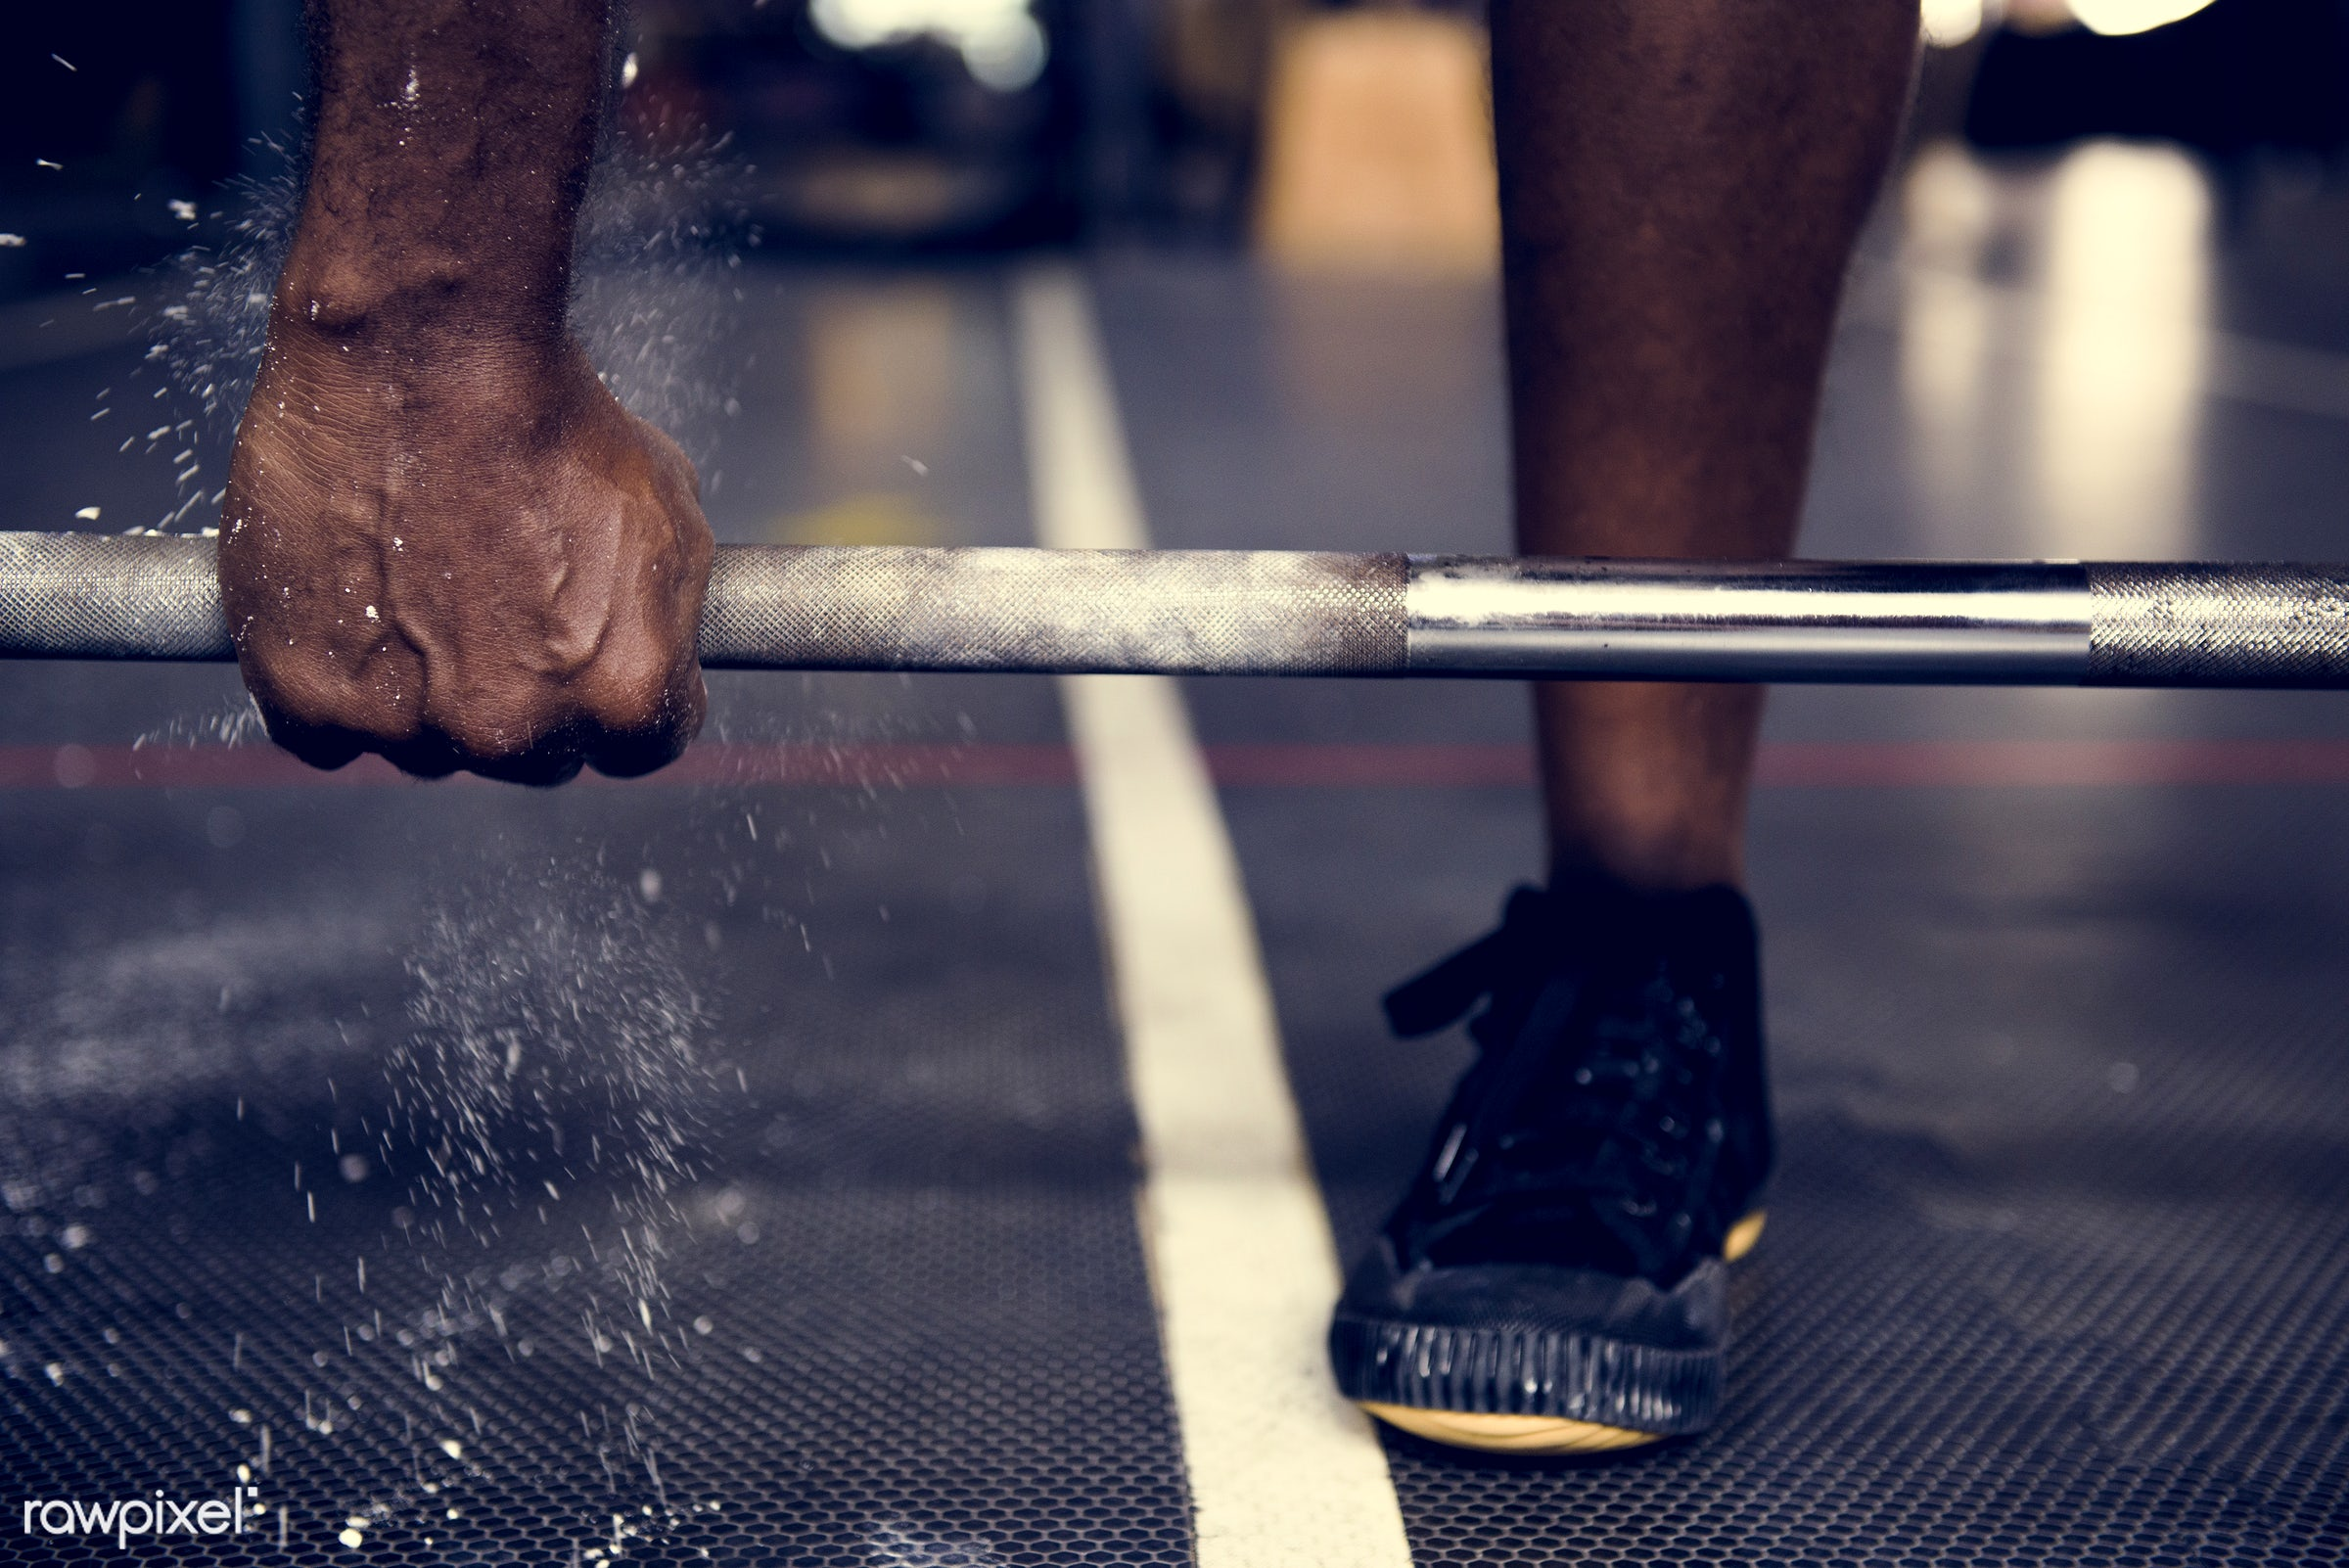 At the gym - activity, african descent, athlete, athletic, barbell, courage, fit, fitness, floor, footwear, gym, health,...